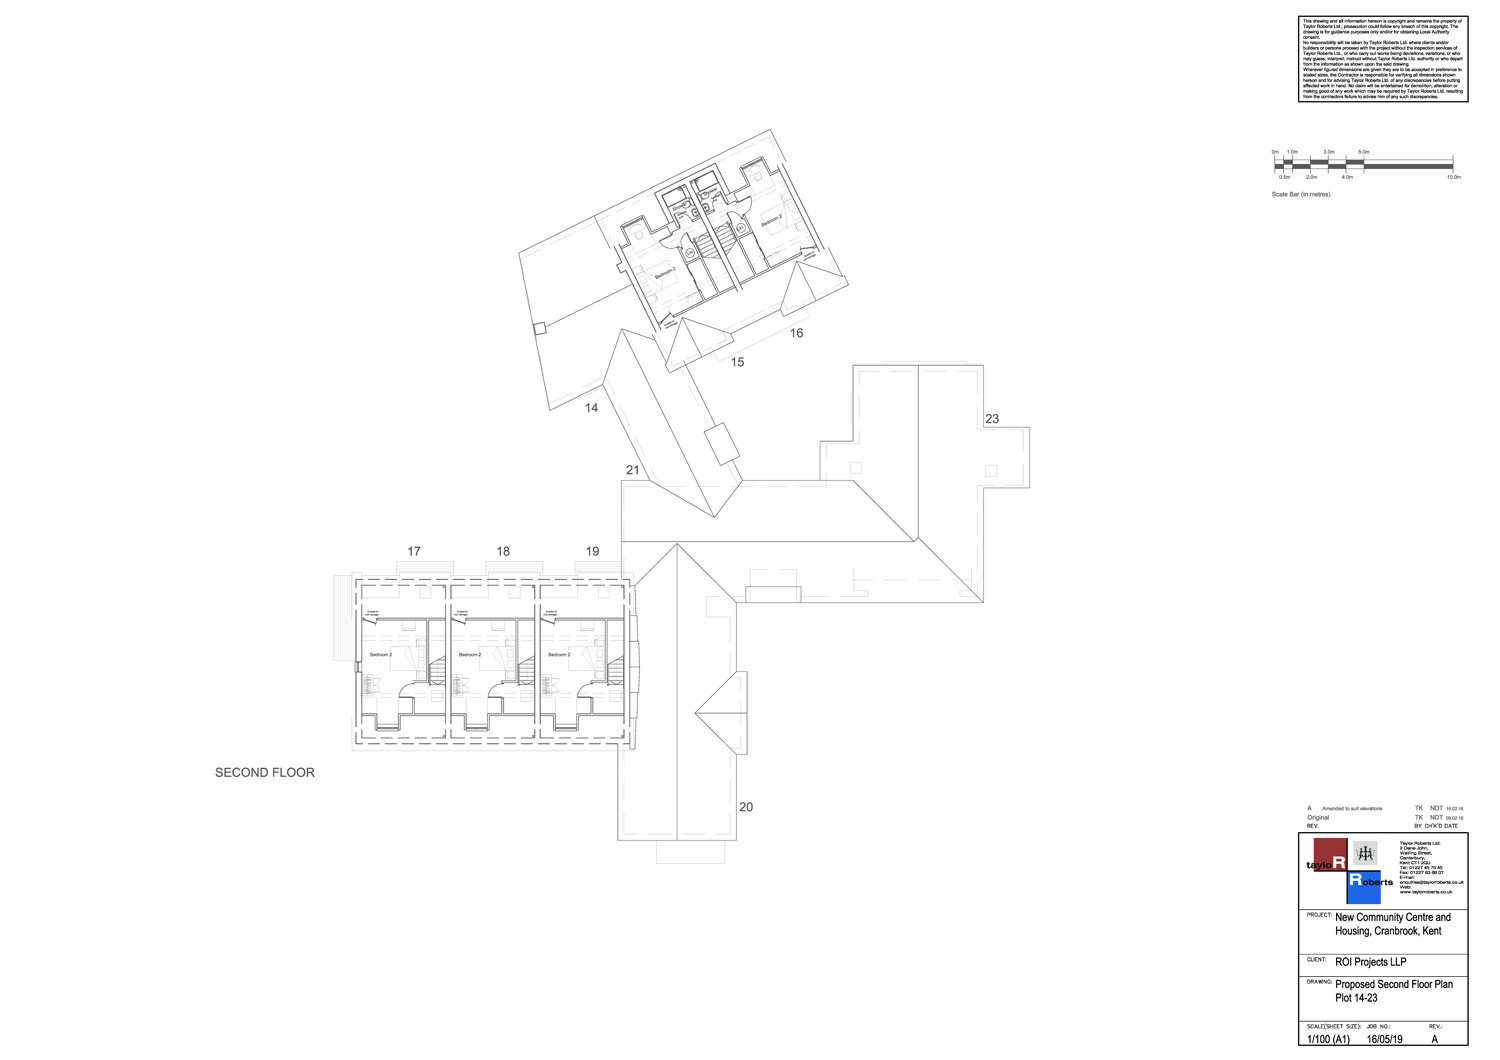 16-05-19-A---Proposed-Second-Floor-Plan-(Plot-14-23).png